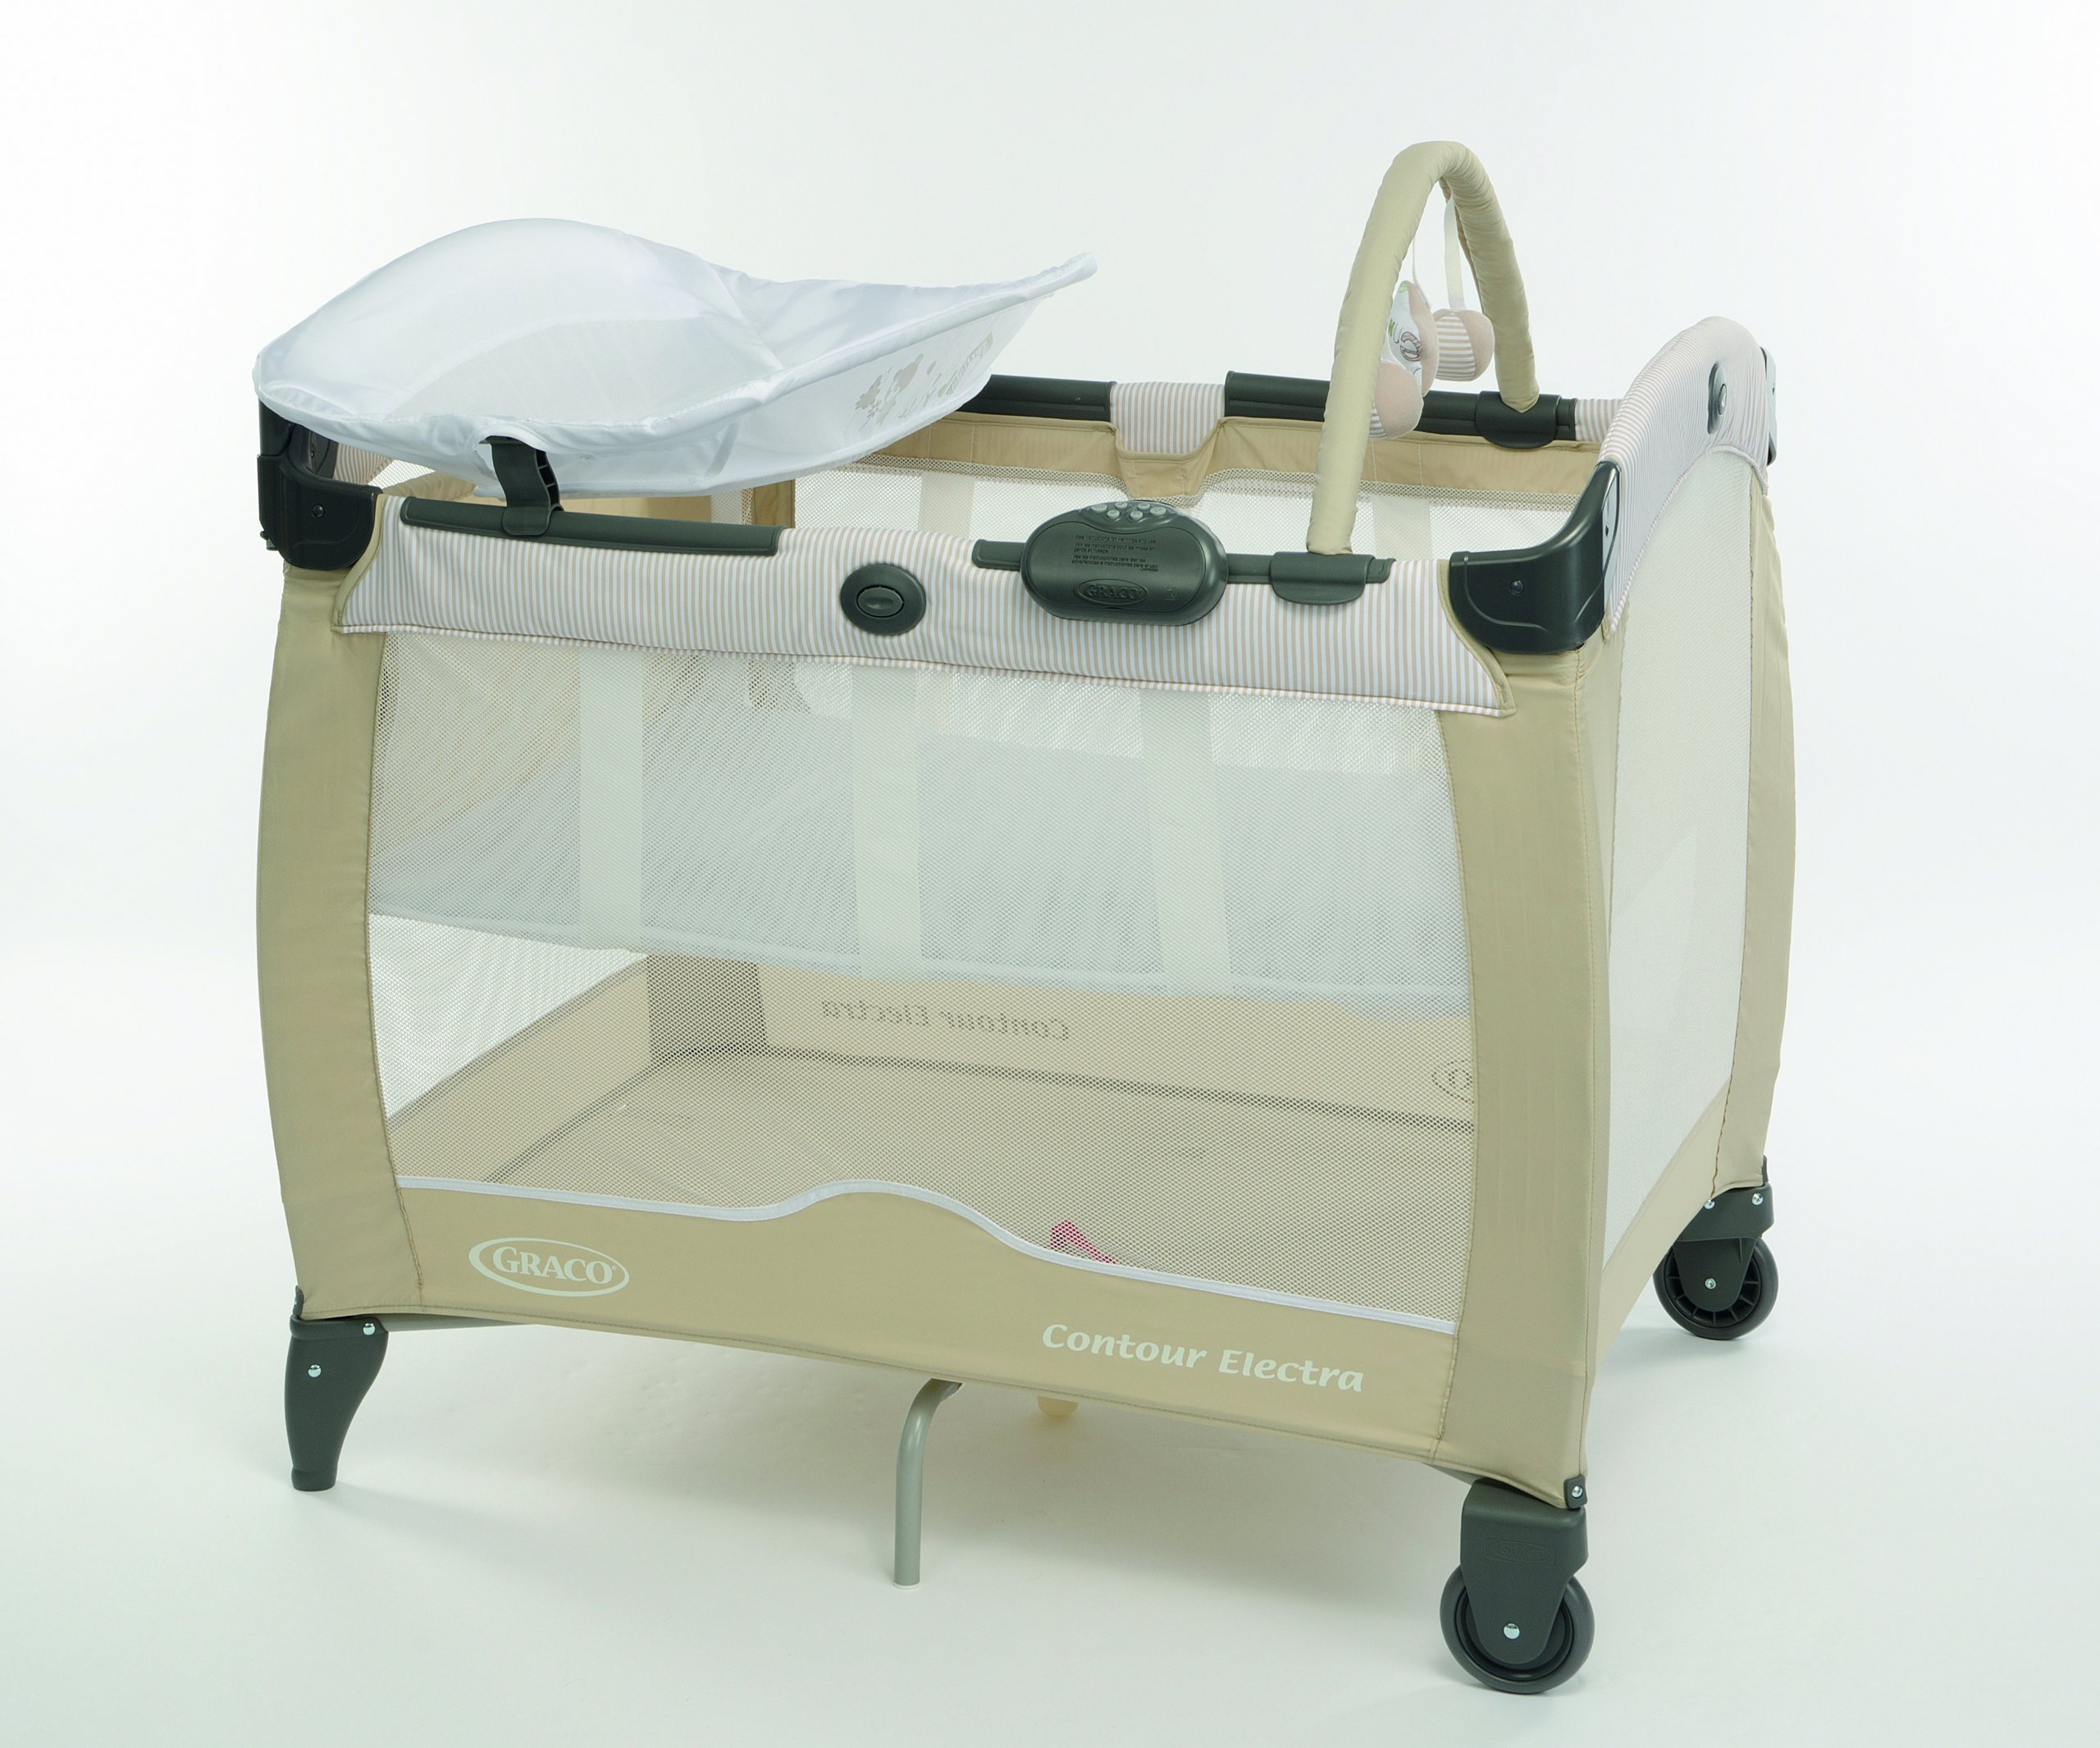 Graco Contour Electra Travel Cot - Benny and Bell Graco The bassinet is suitable from birth to 6.5 kg/3 months The bed is suitable from birth to about 3 years/15 kg Detachable control box for night light, music and vibration 3